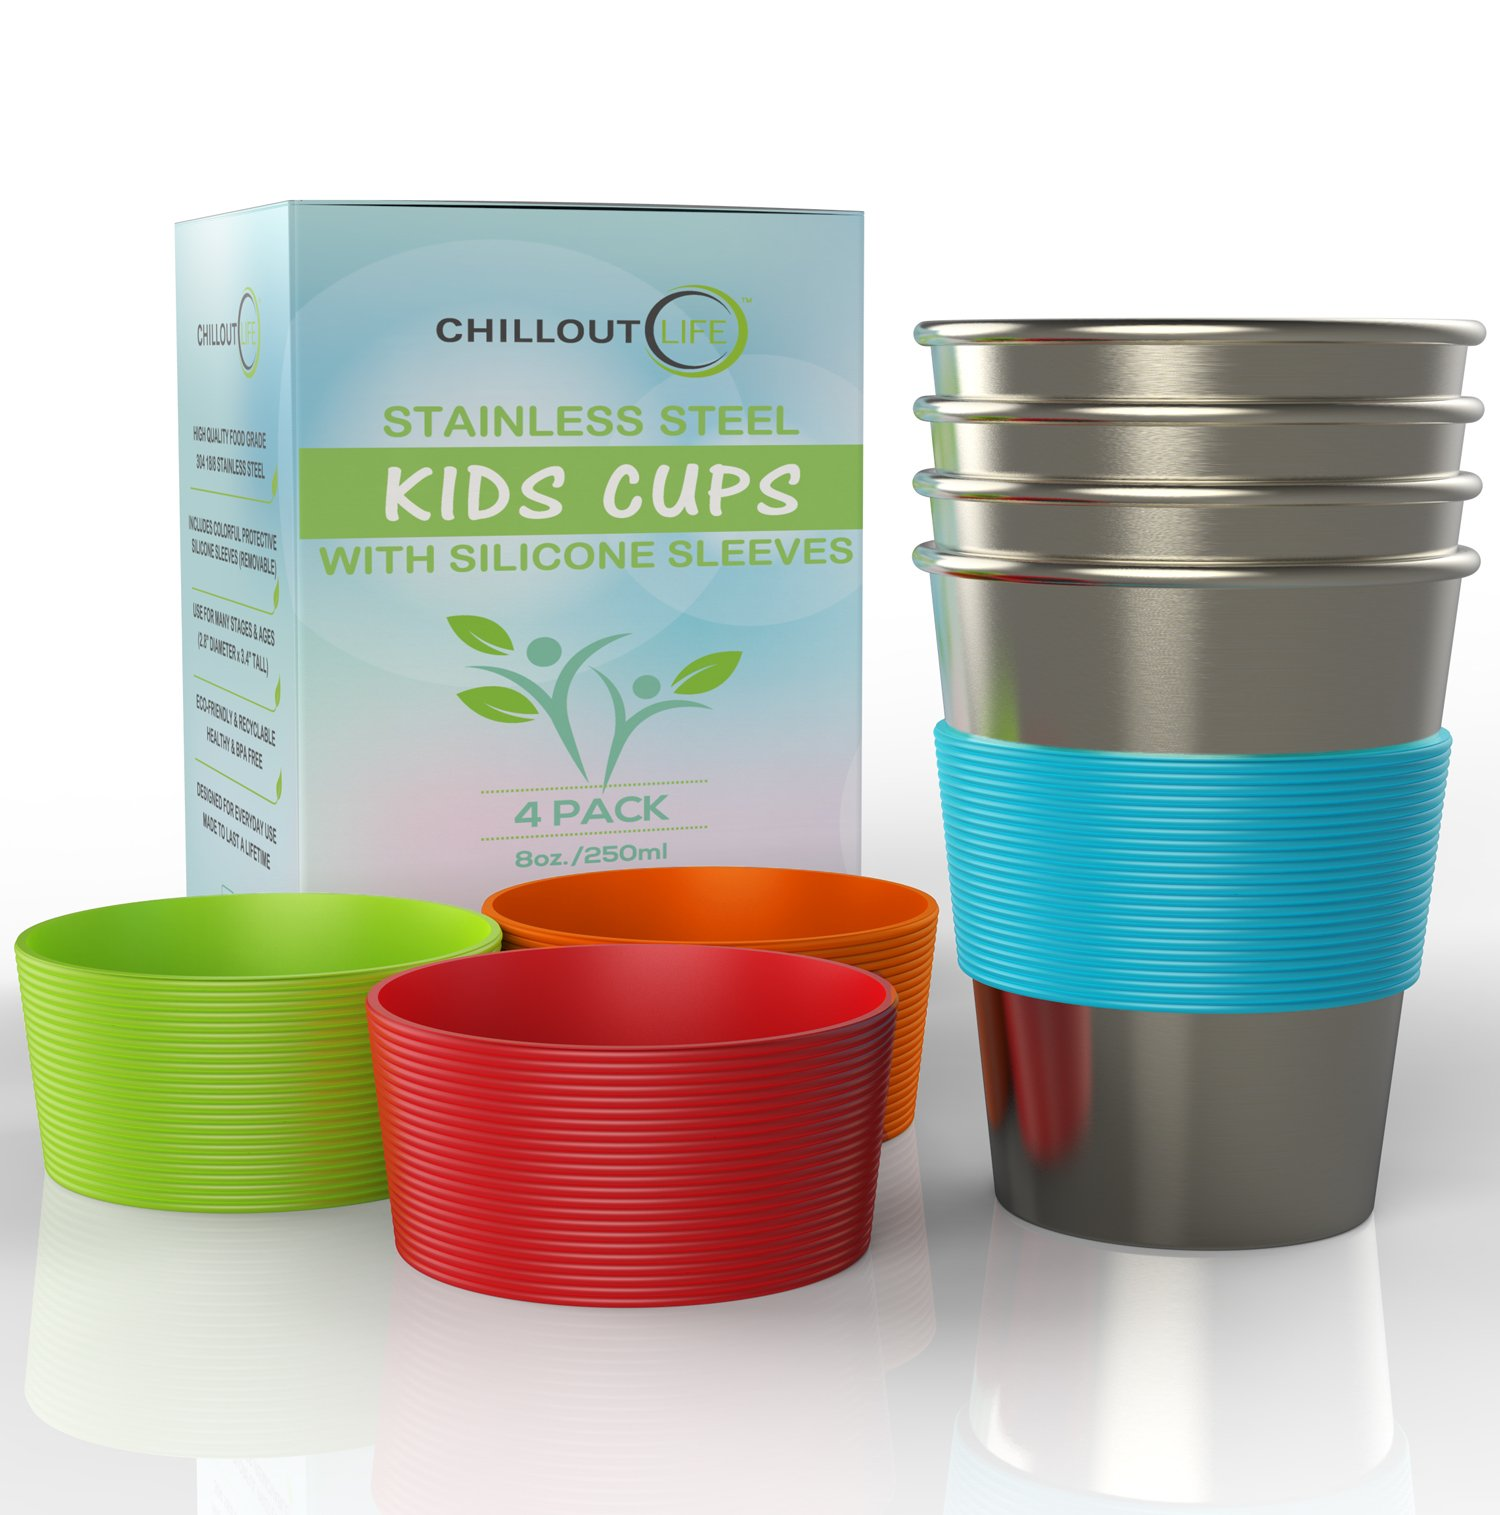 1f7cdc457dd Get Quotations · Stainless Steel Cups for Kids and Toddlers 8 oz. with  Silicone Sleeves - Stainless Steel